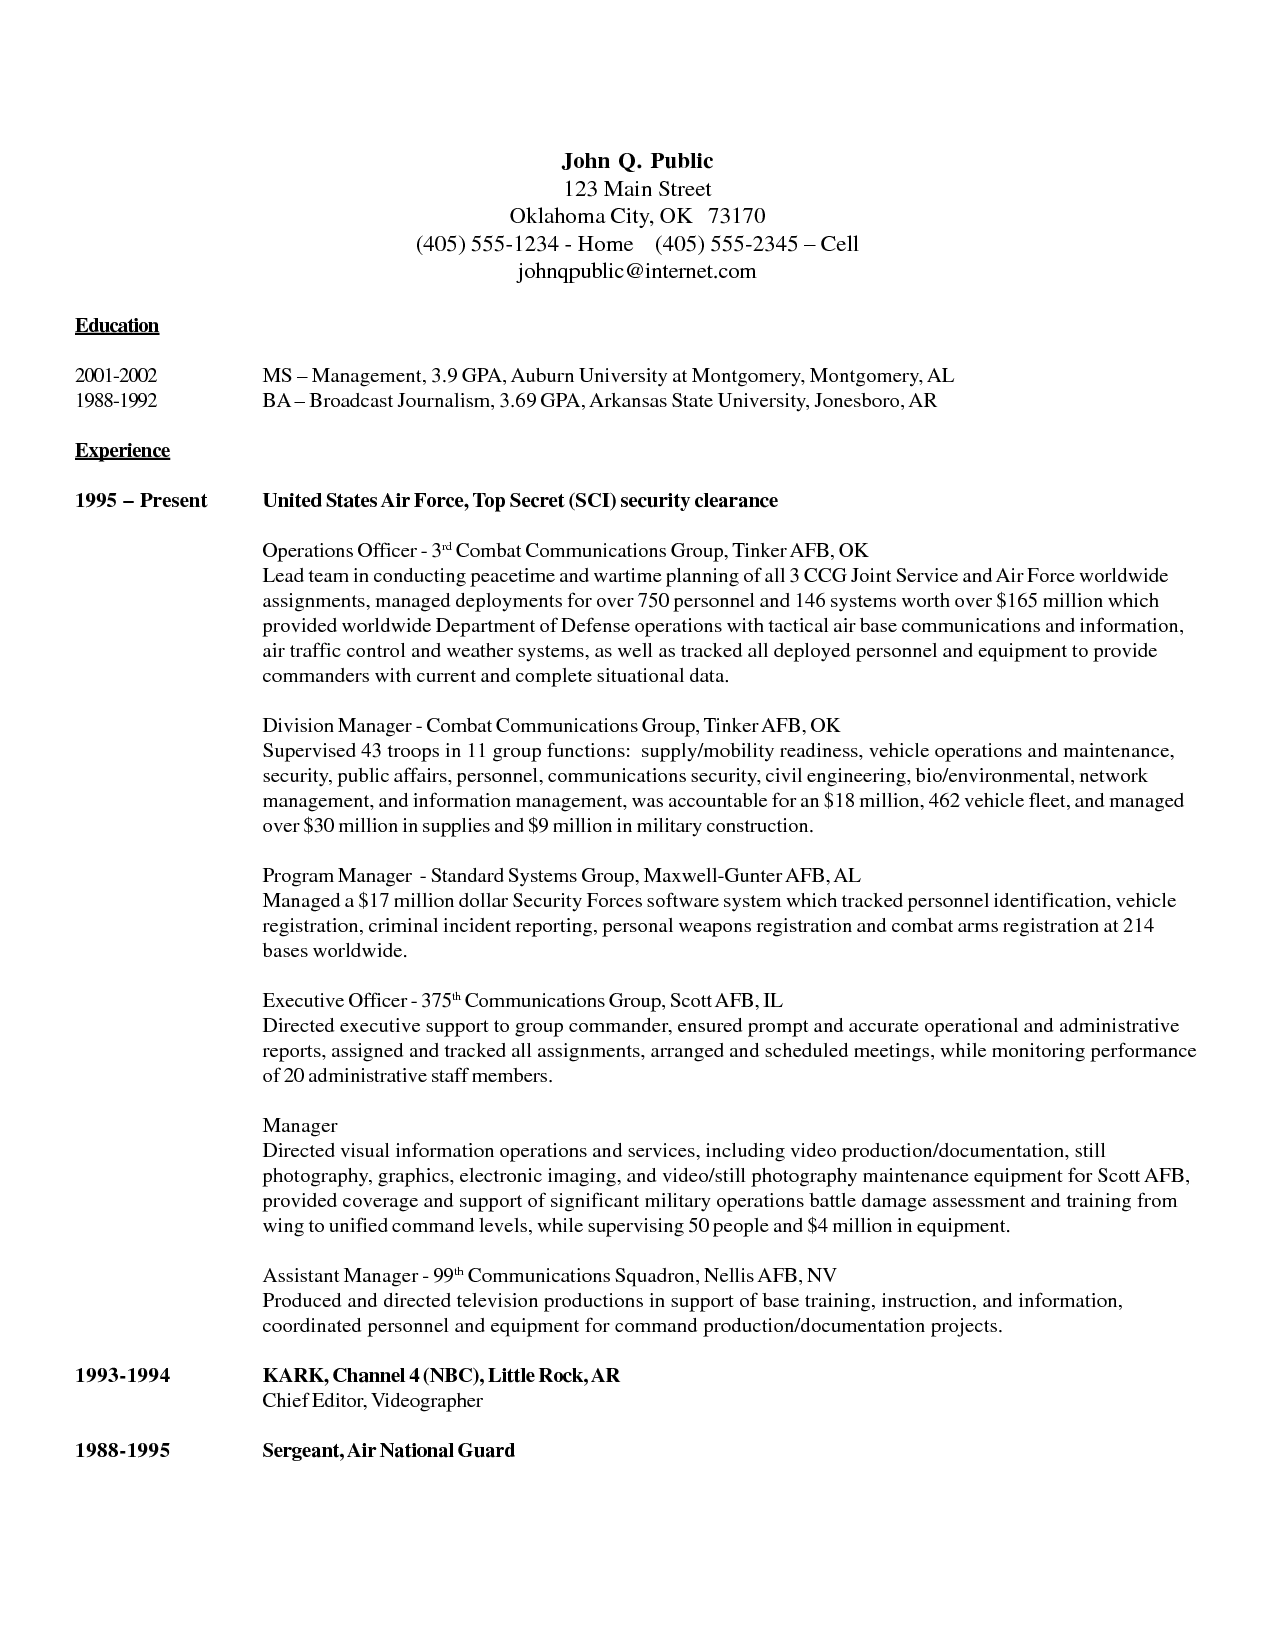 Security Officer Resume    Http://www.resumecareer.info/security Officer Resume 13/